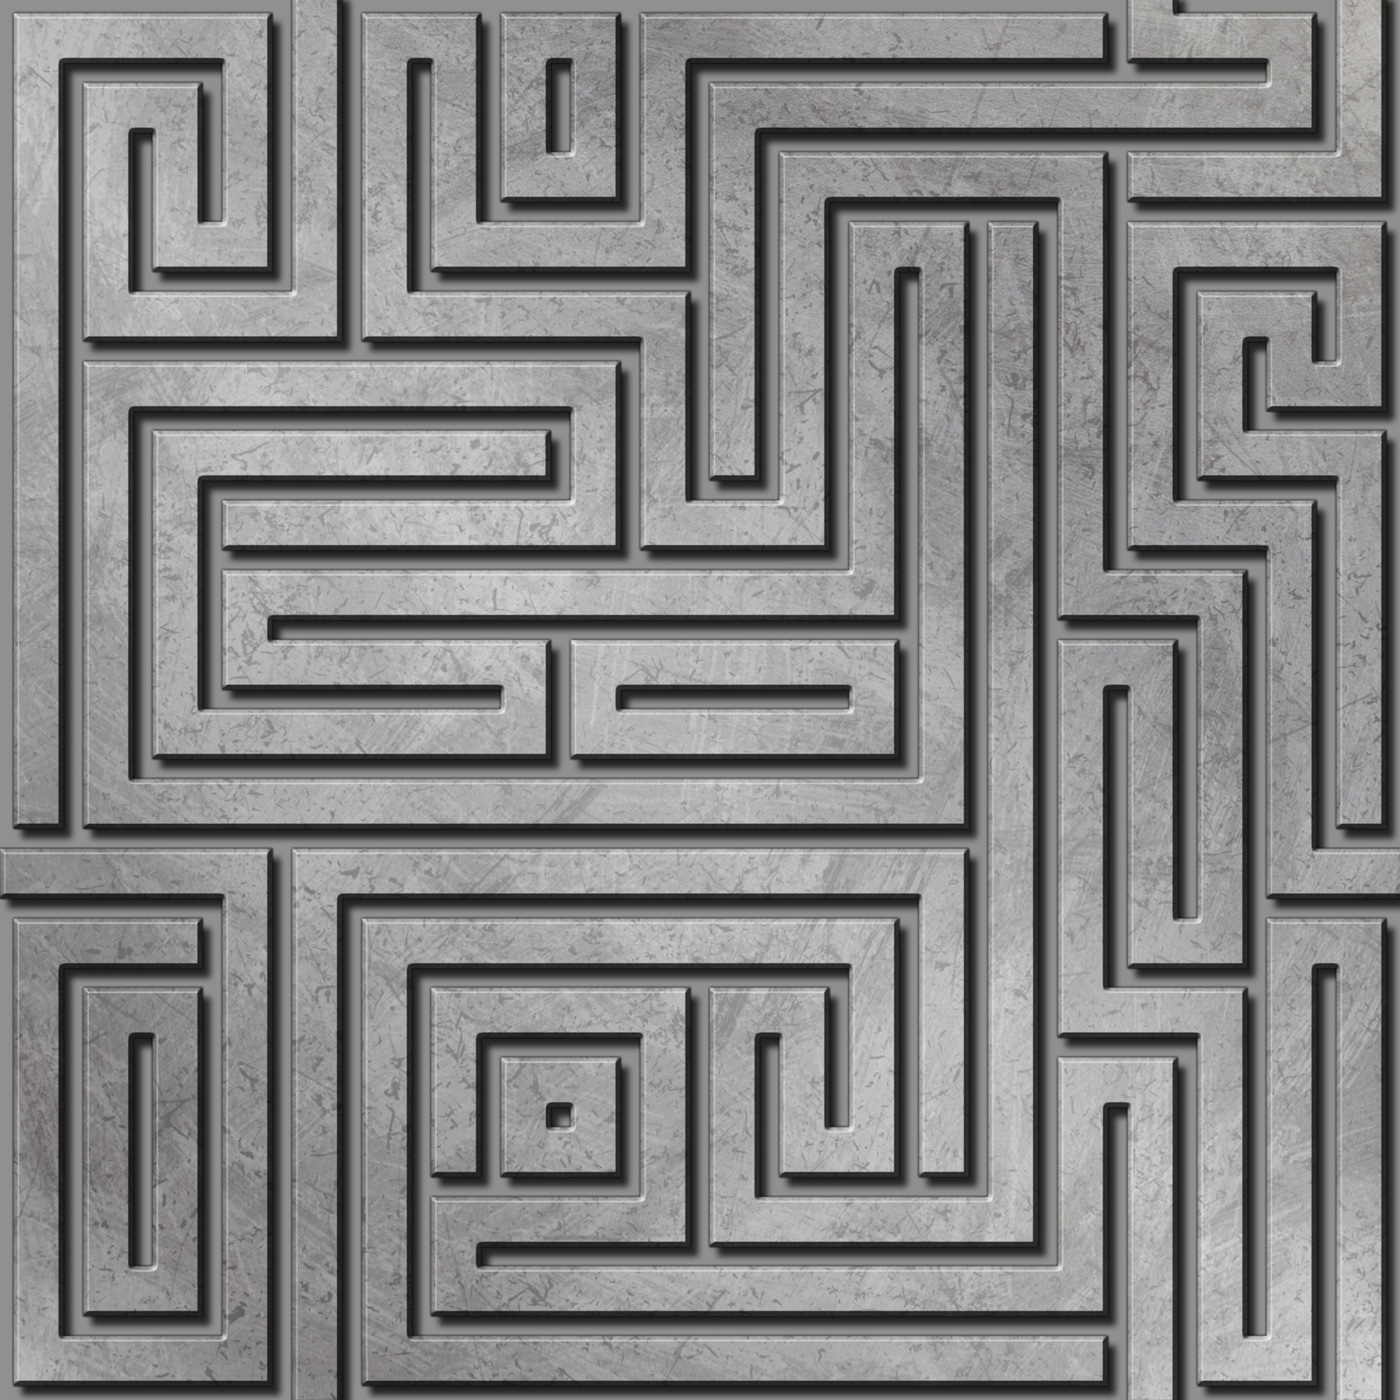 Virtual Reality System Takes Users Through An Endless Maze In One Room